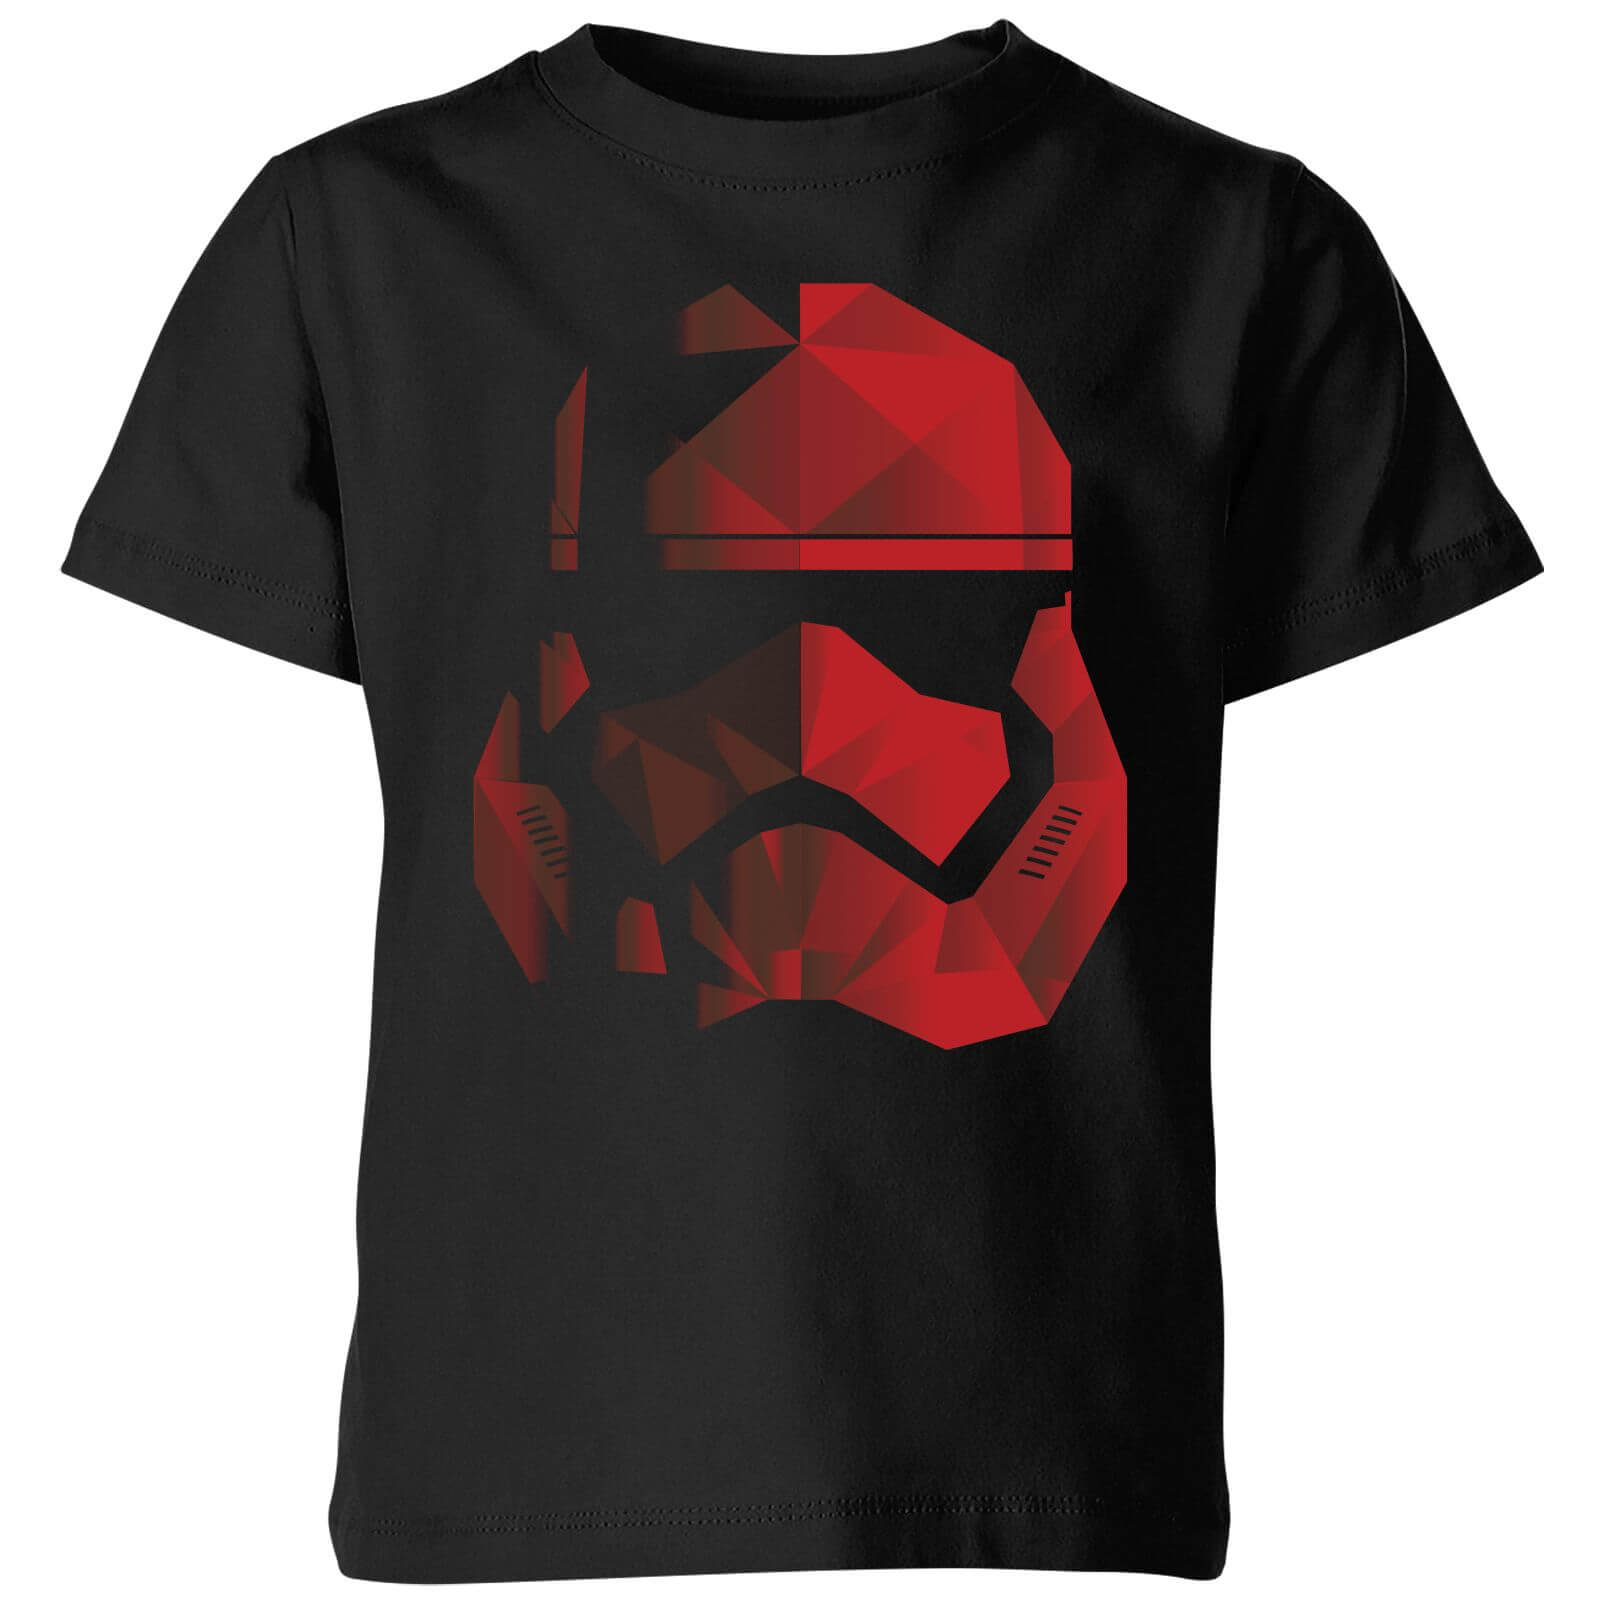 Star Wars Jedi Cubist Trooper Helmet Black Kids